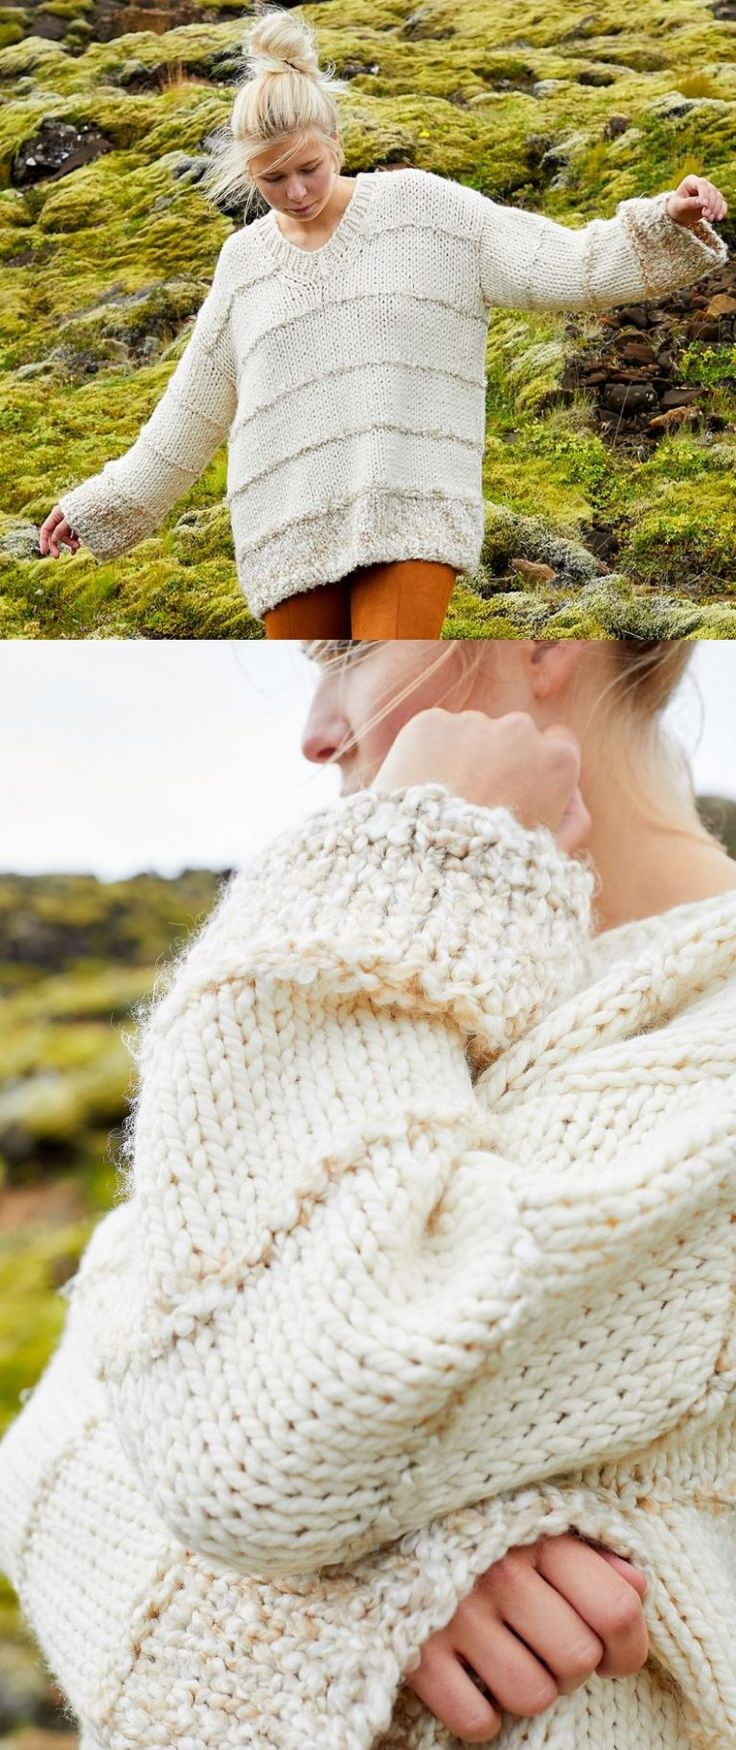 What You Should Know Before Proceeding Crochet Chunky Yarn Patterns Knitting Patterns Sweaters Free Knitting Pattern For A Chunky Yarn